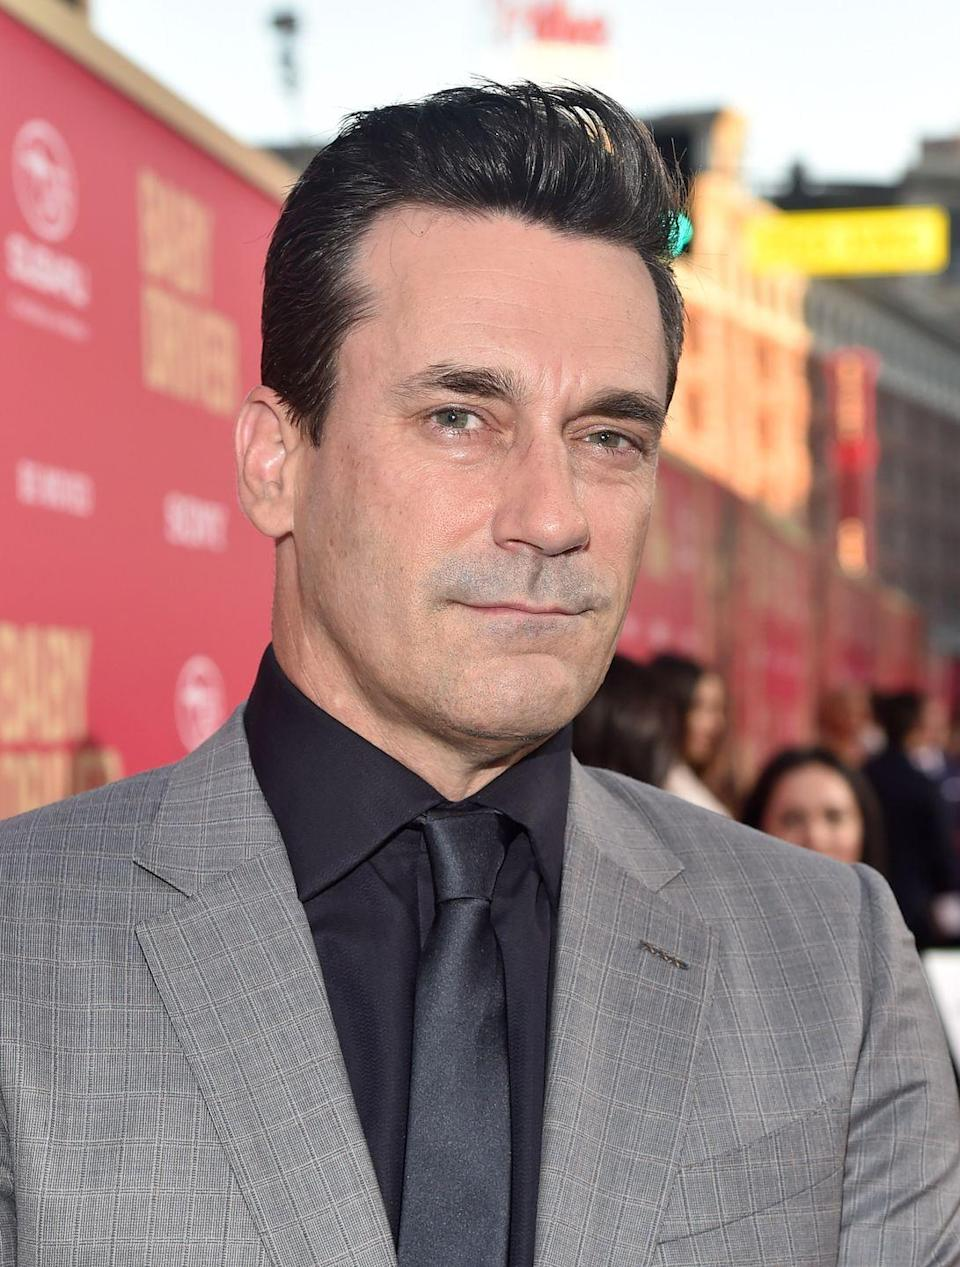 <p>Jon Hamm doesn't usually stray from his Don Drapper hairdo: jet black hair, slicked back. </p>